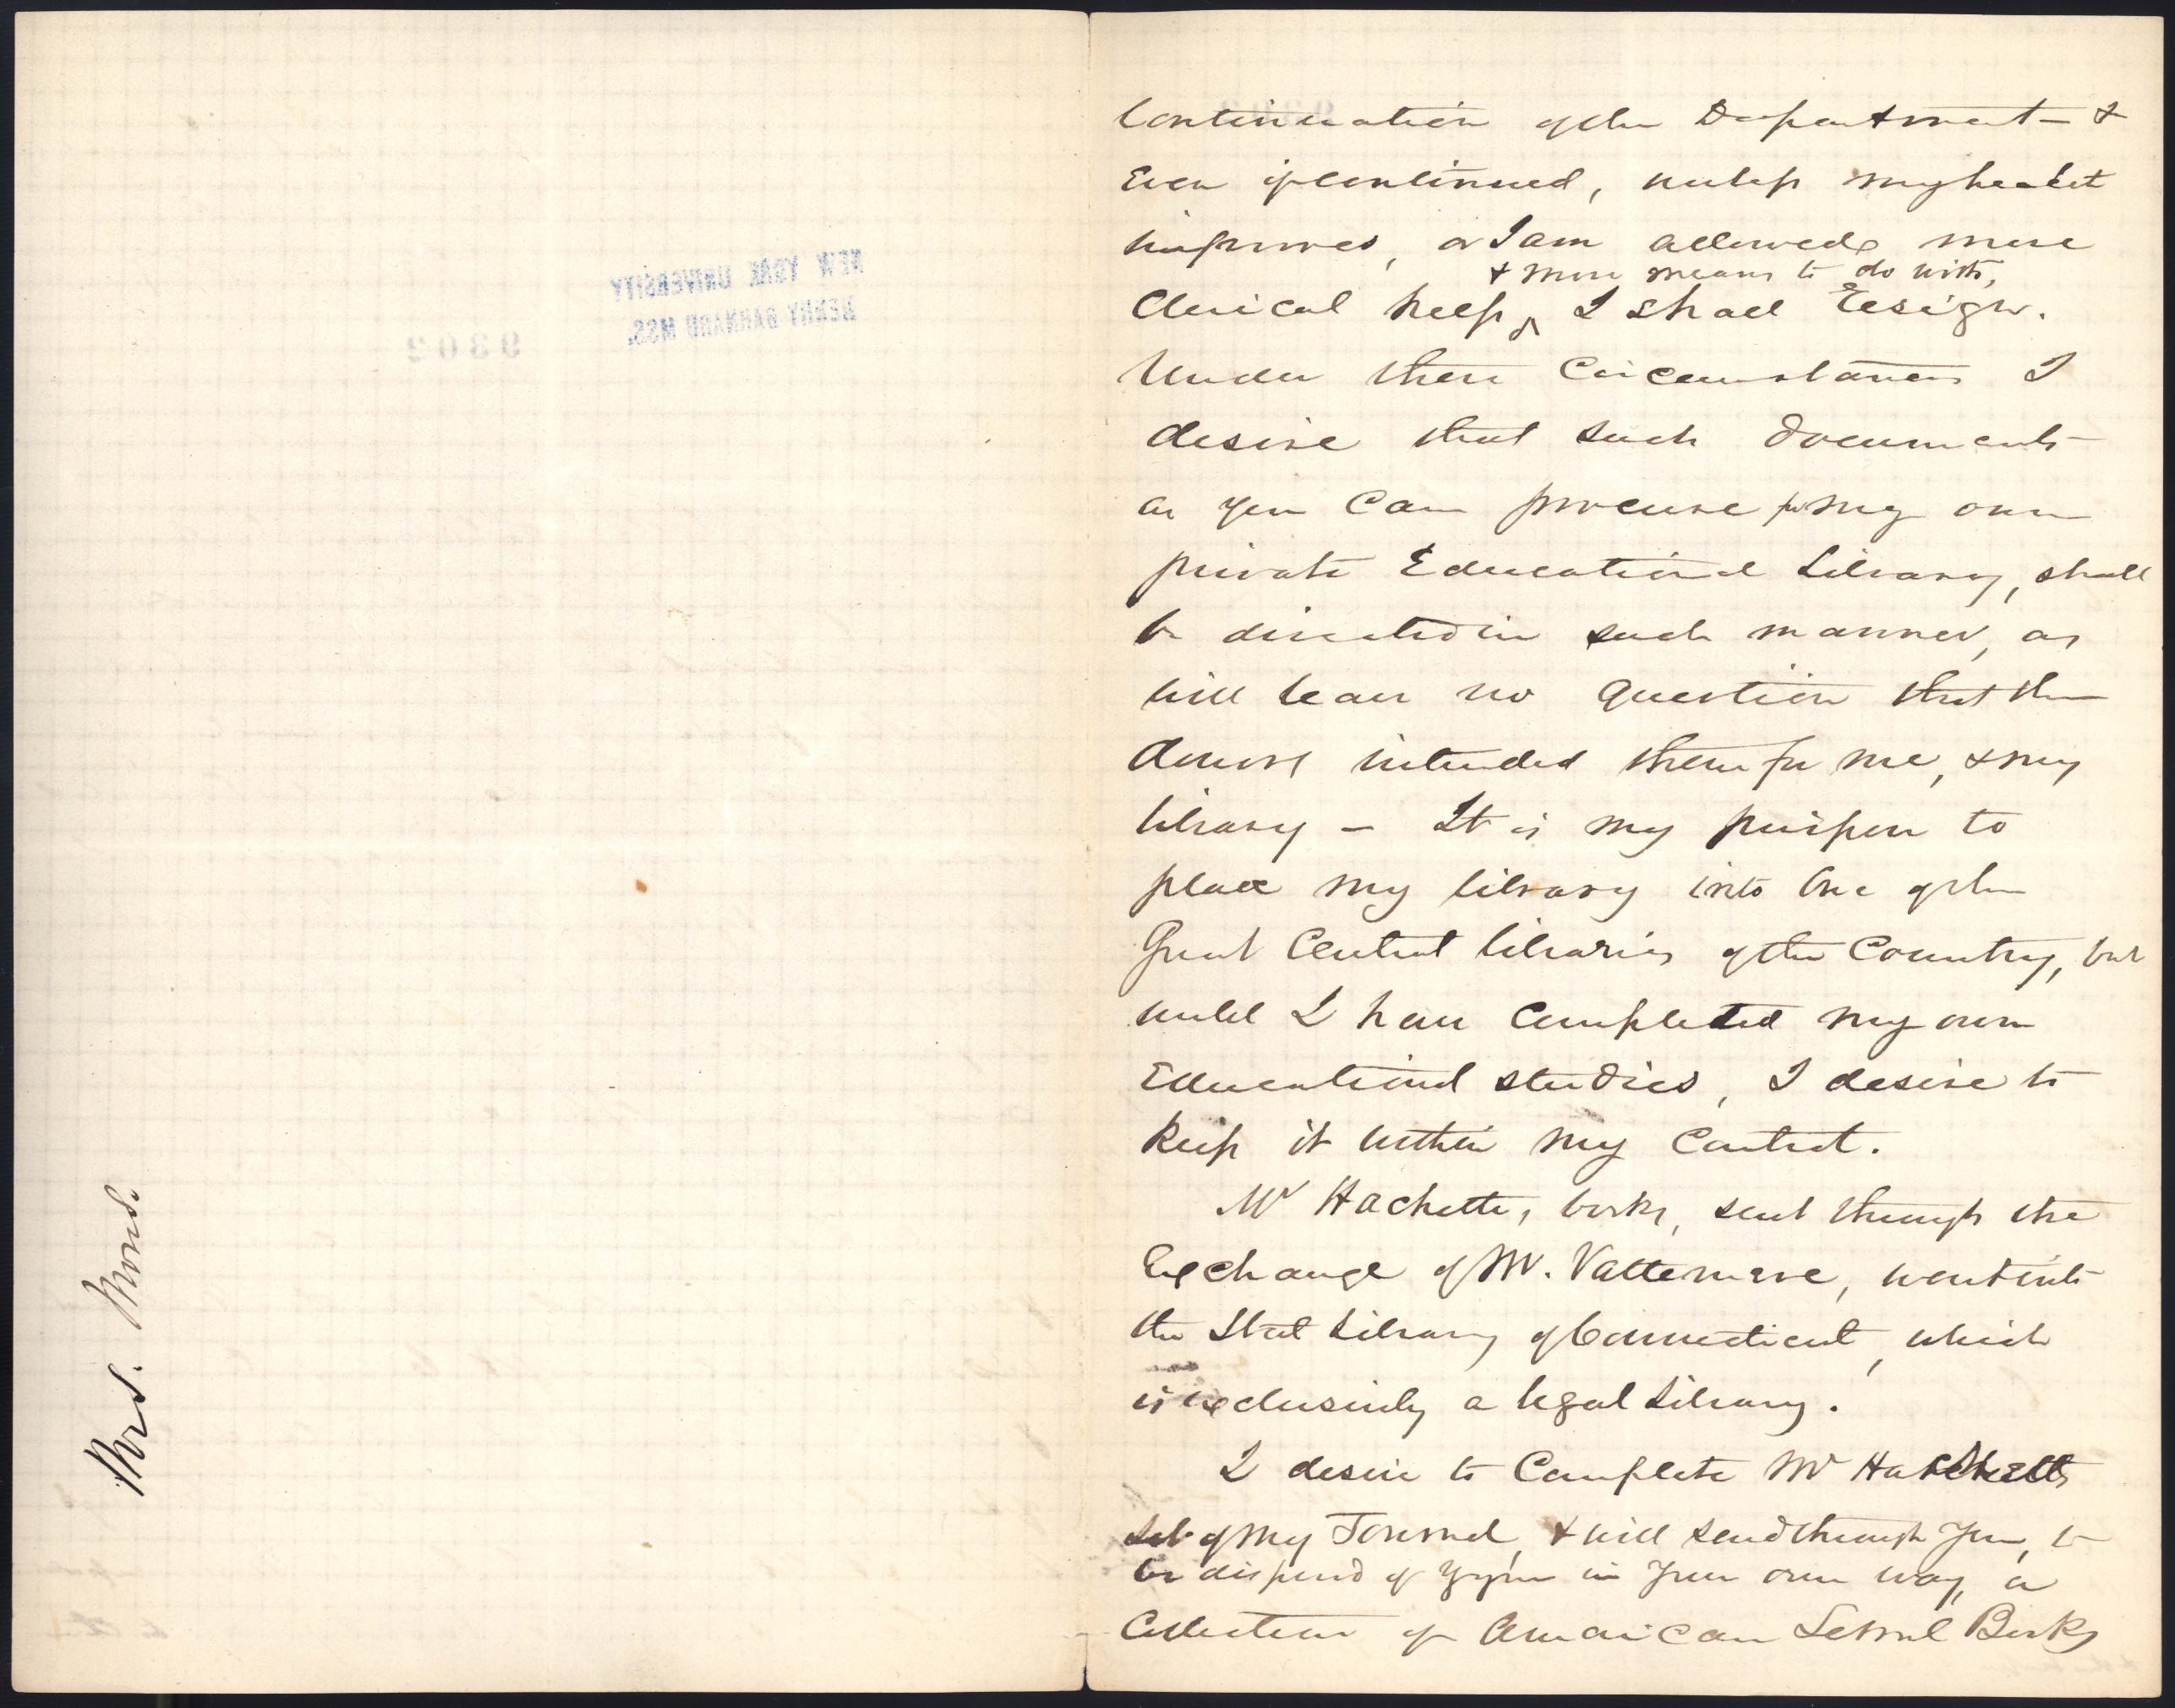 1A_B1_F15_Barnard_Unknown_Jan_1869_no.9302_p.2_v.2.jpg